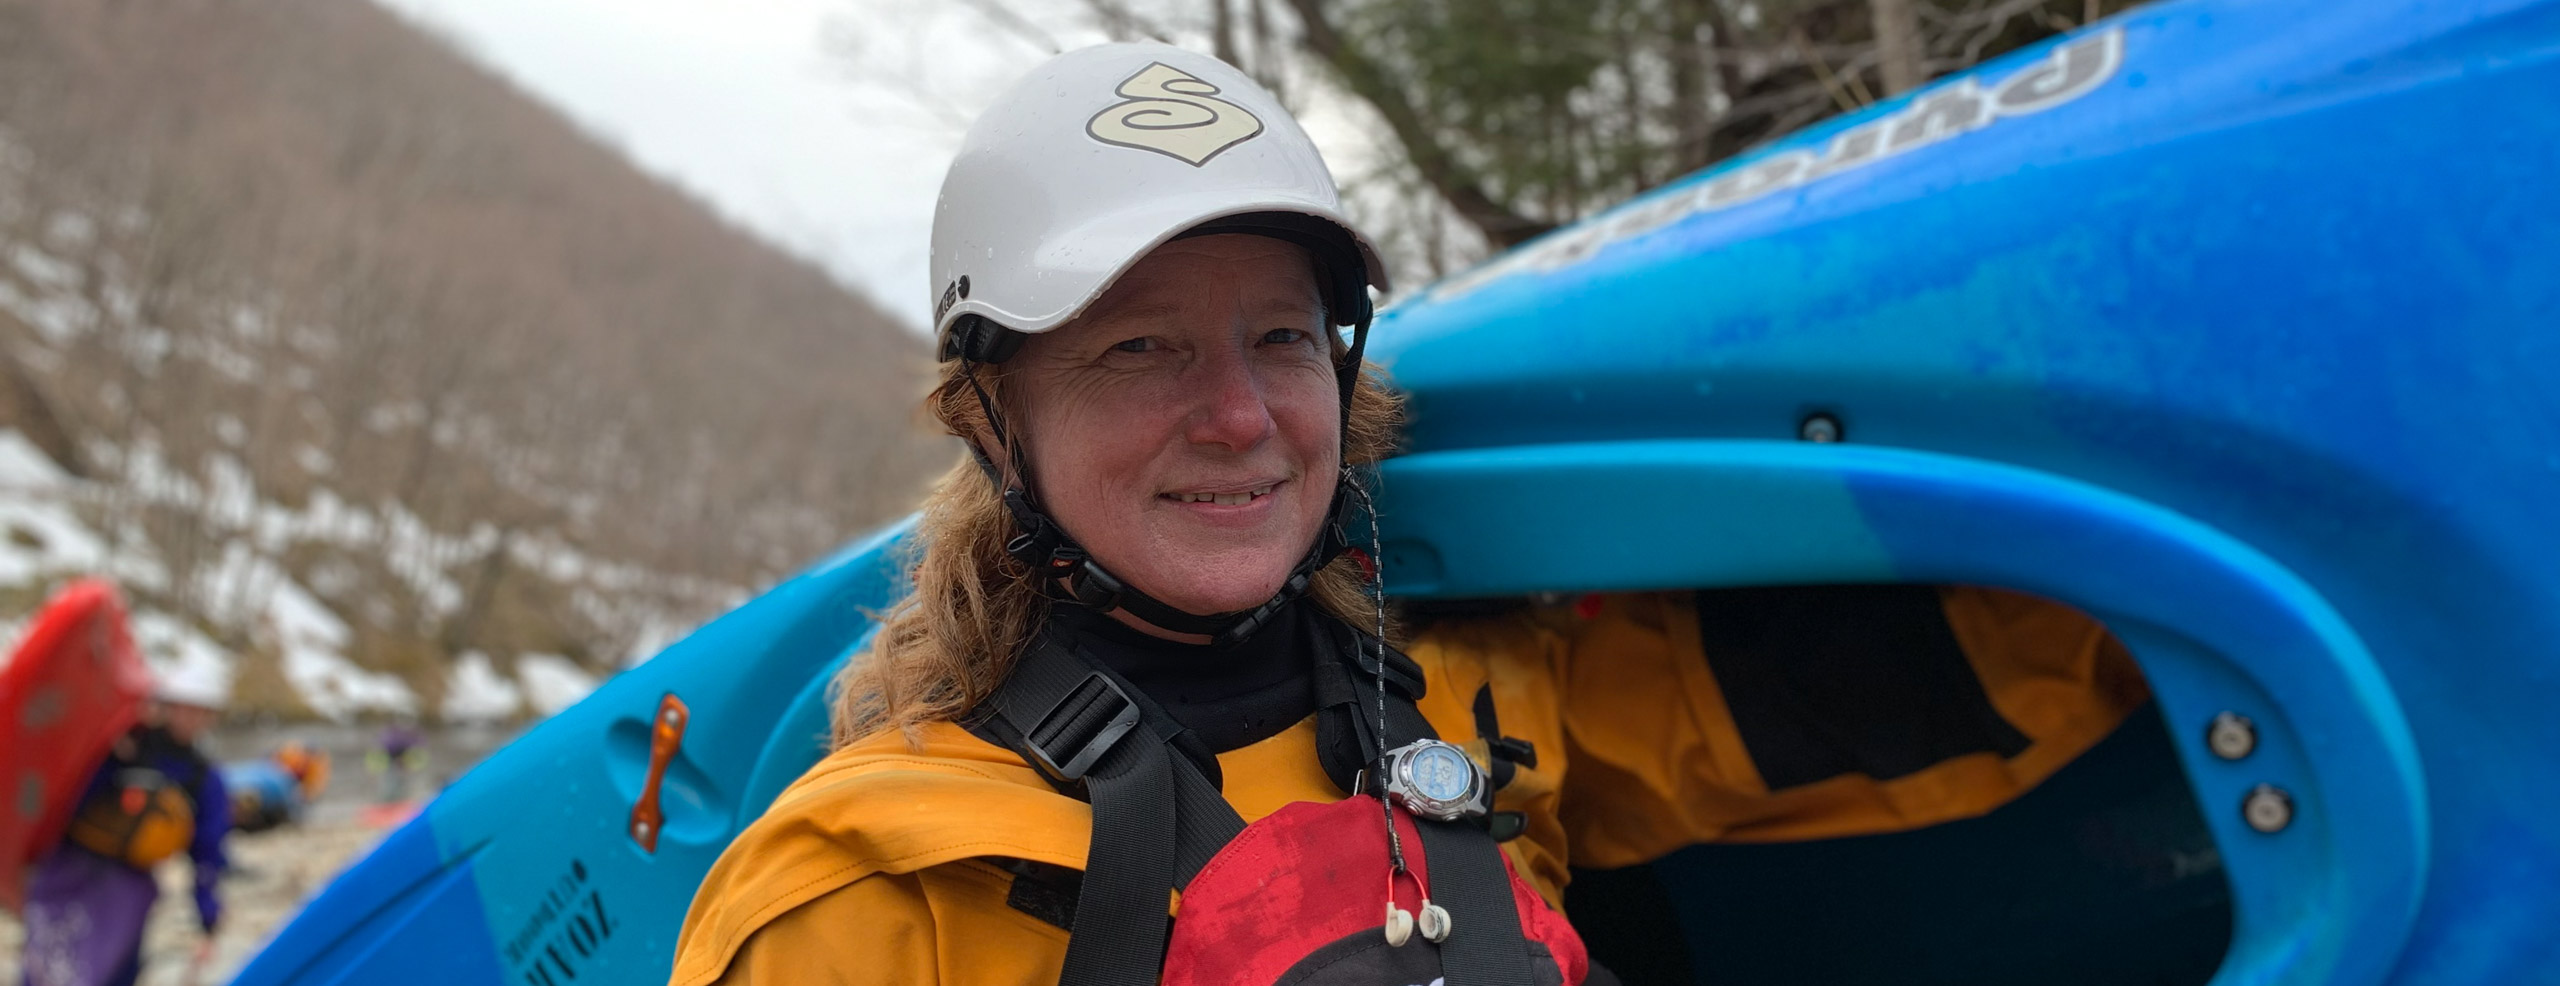 Janet holding her kayak on the river bank